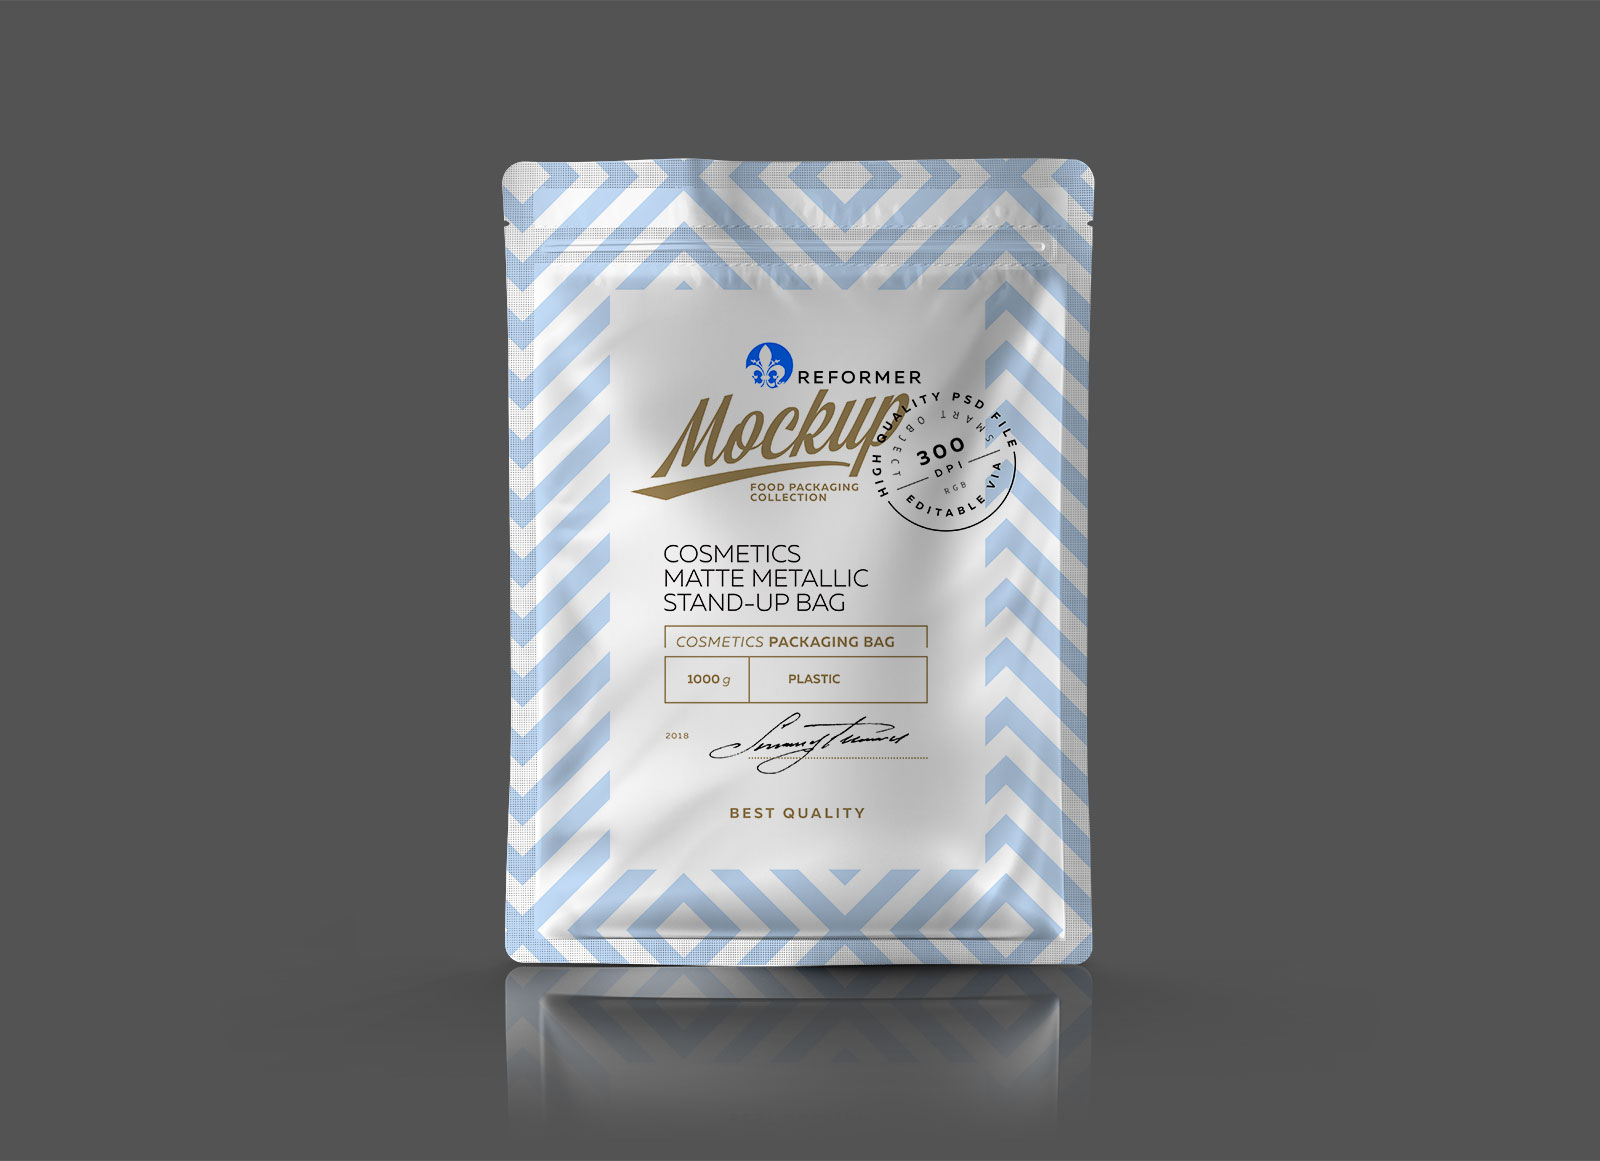 Free-Plastic-Stand-up-Pouch-Packaging-Mockup-PSD-File (2)